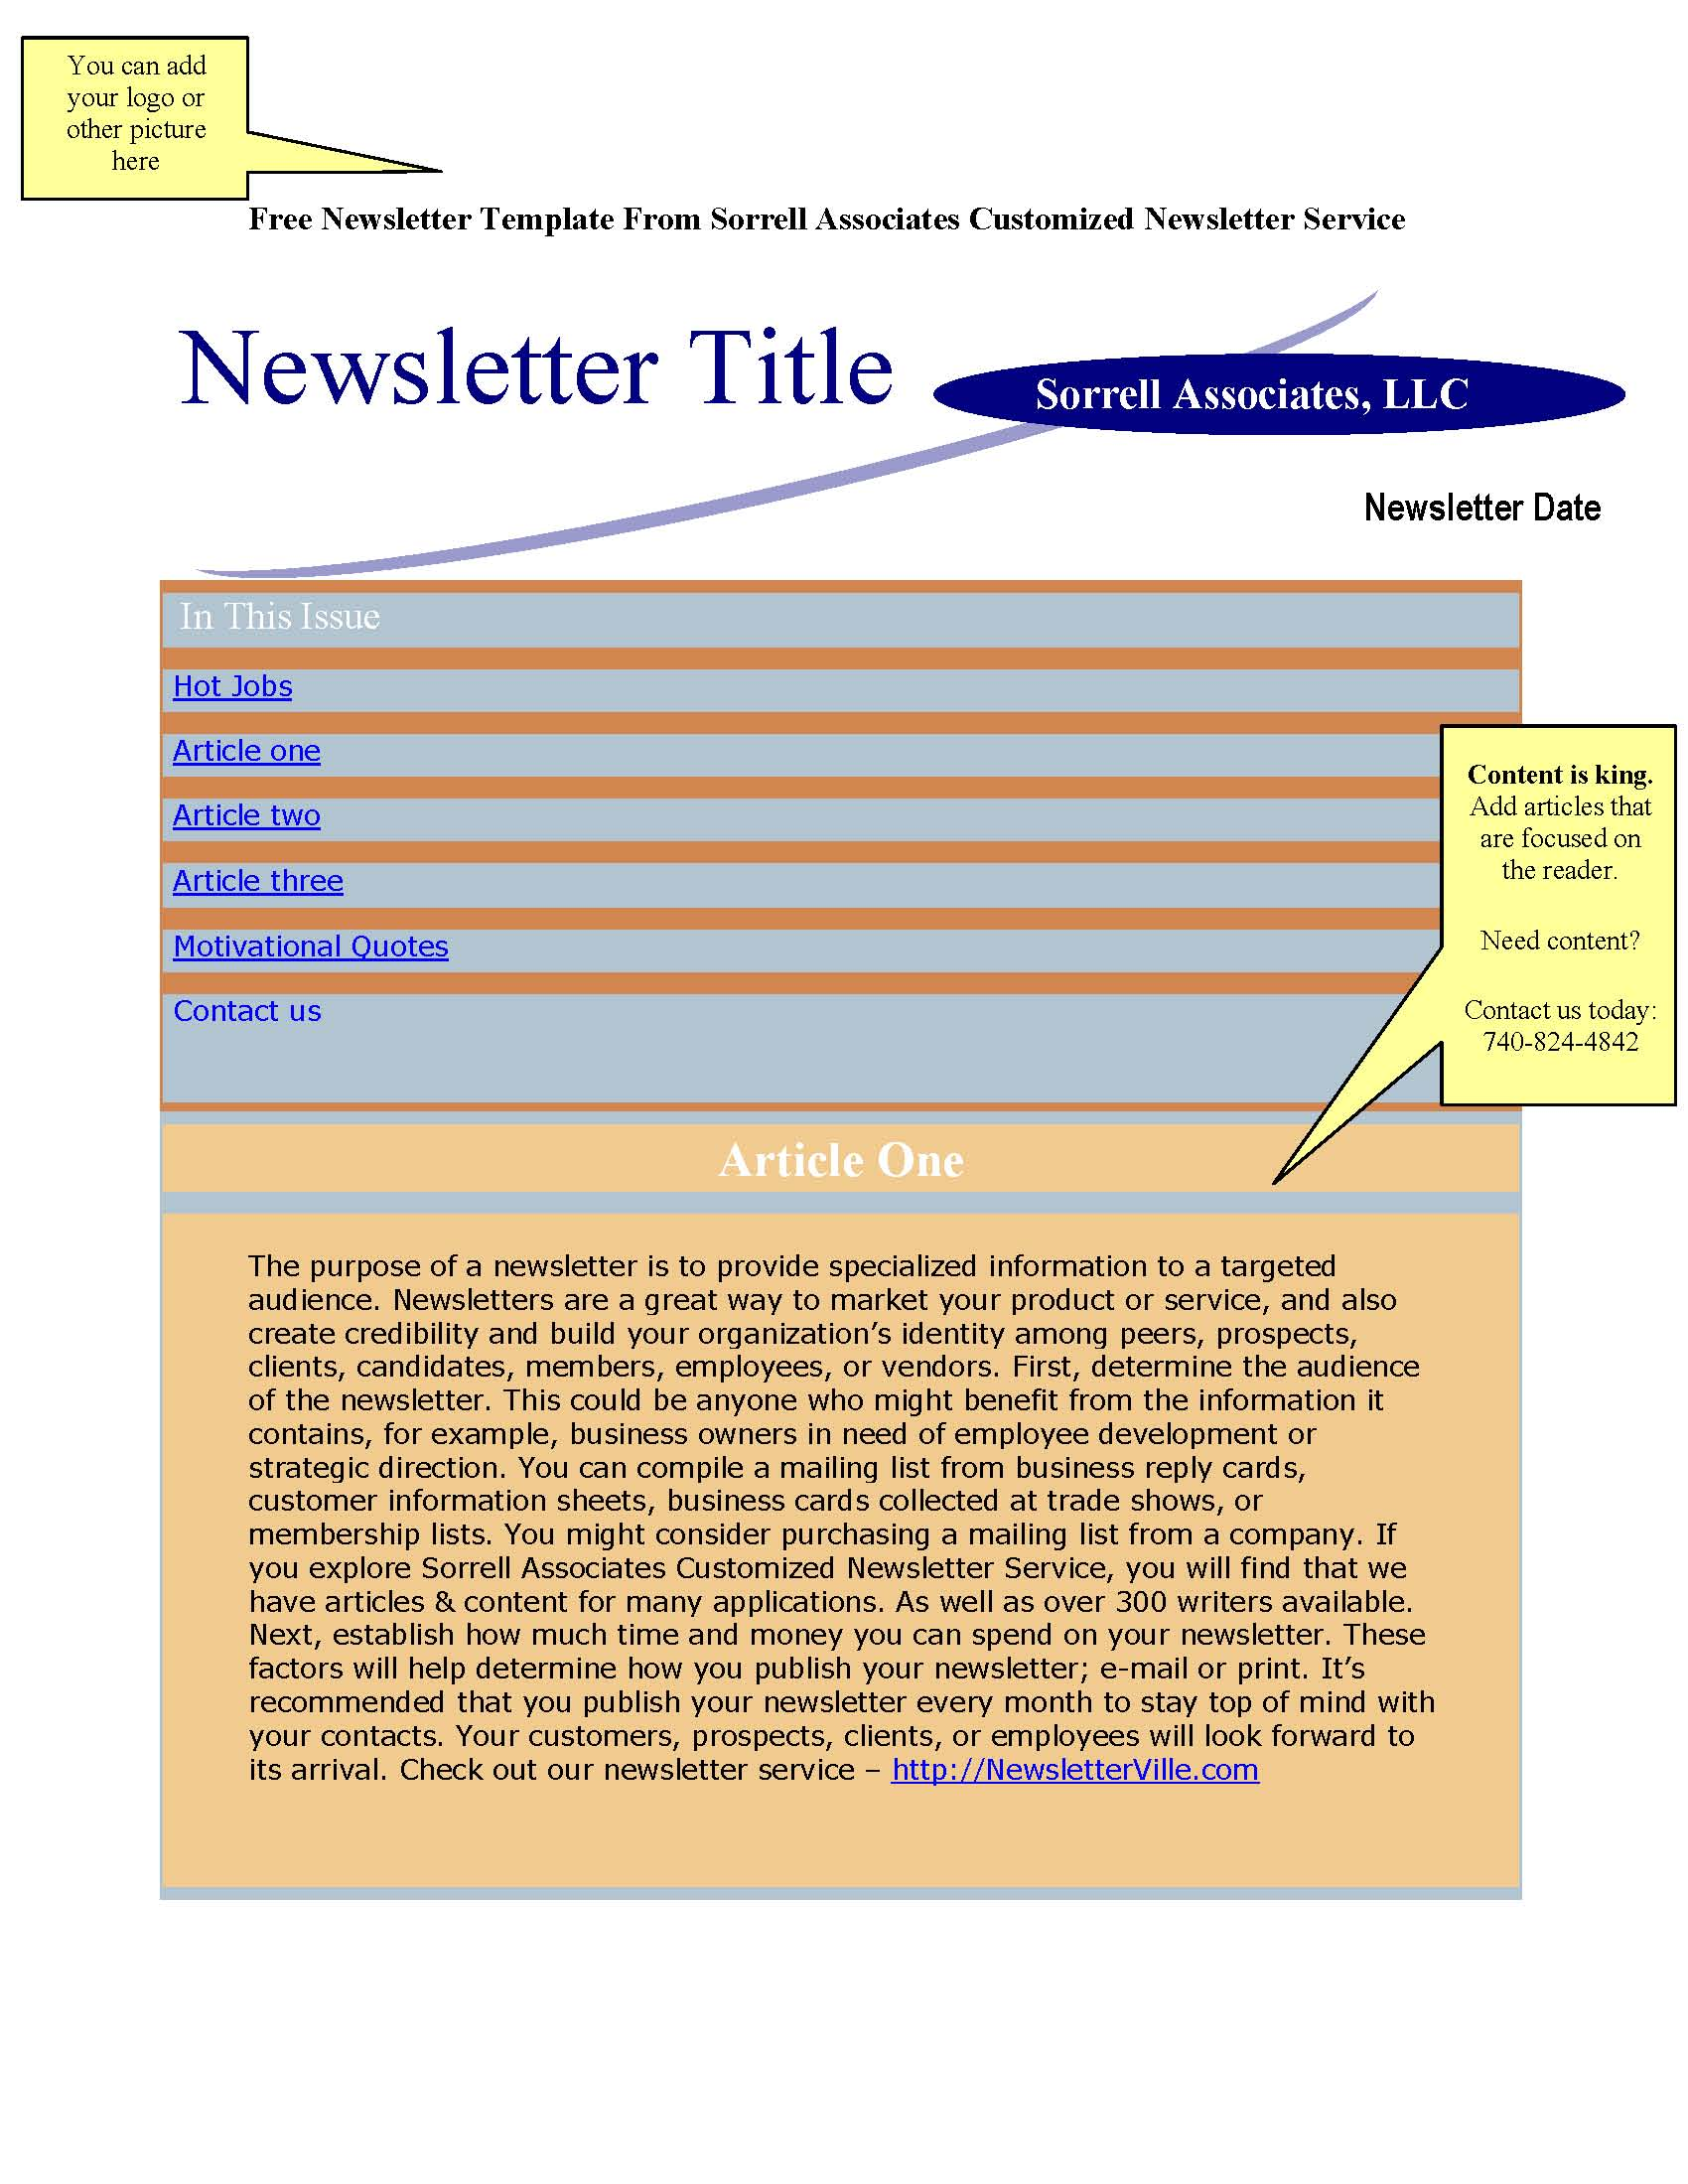 Customized Newsletter Service  News Letter Formats